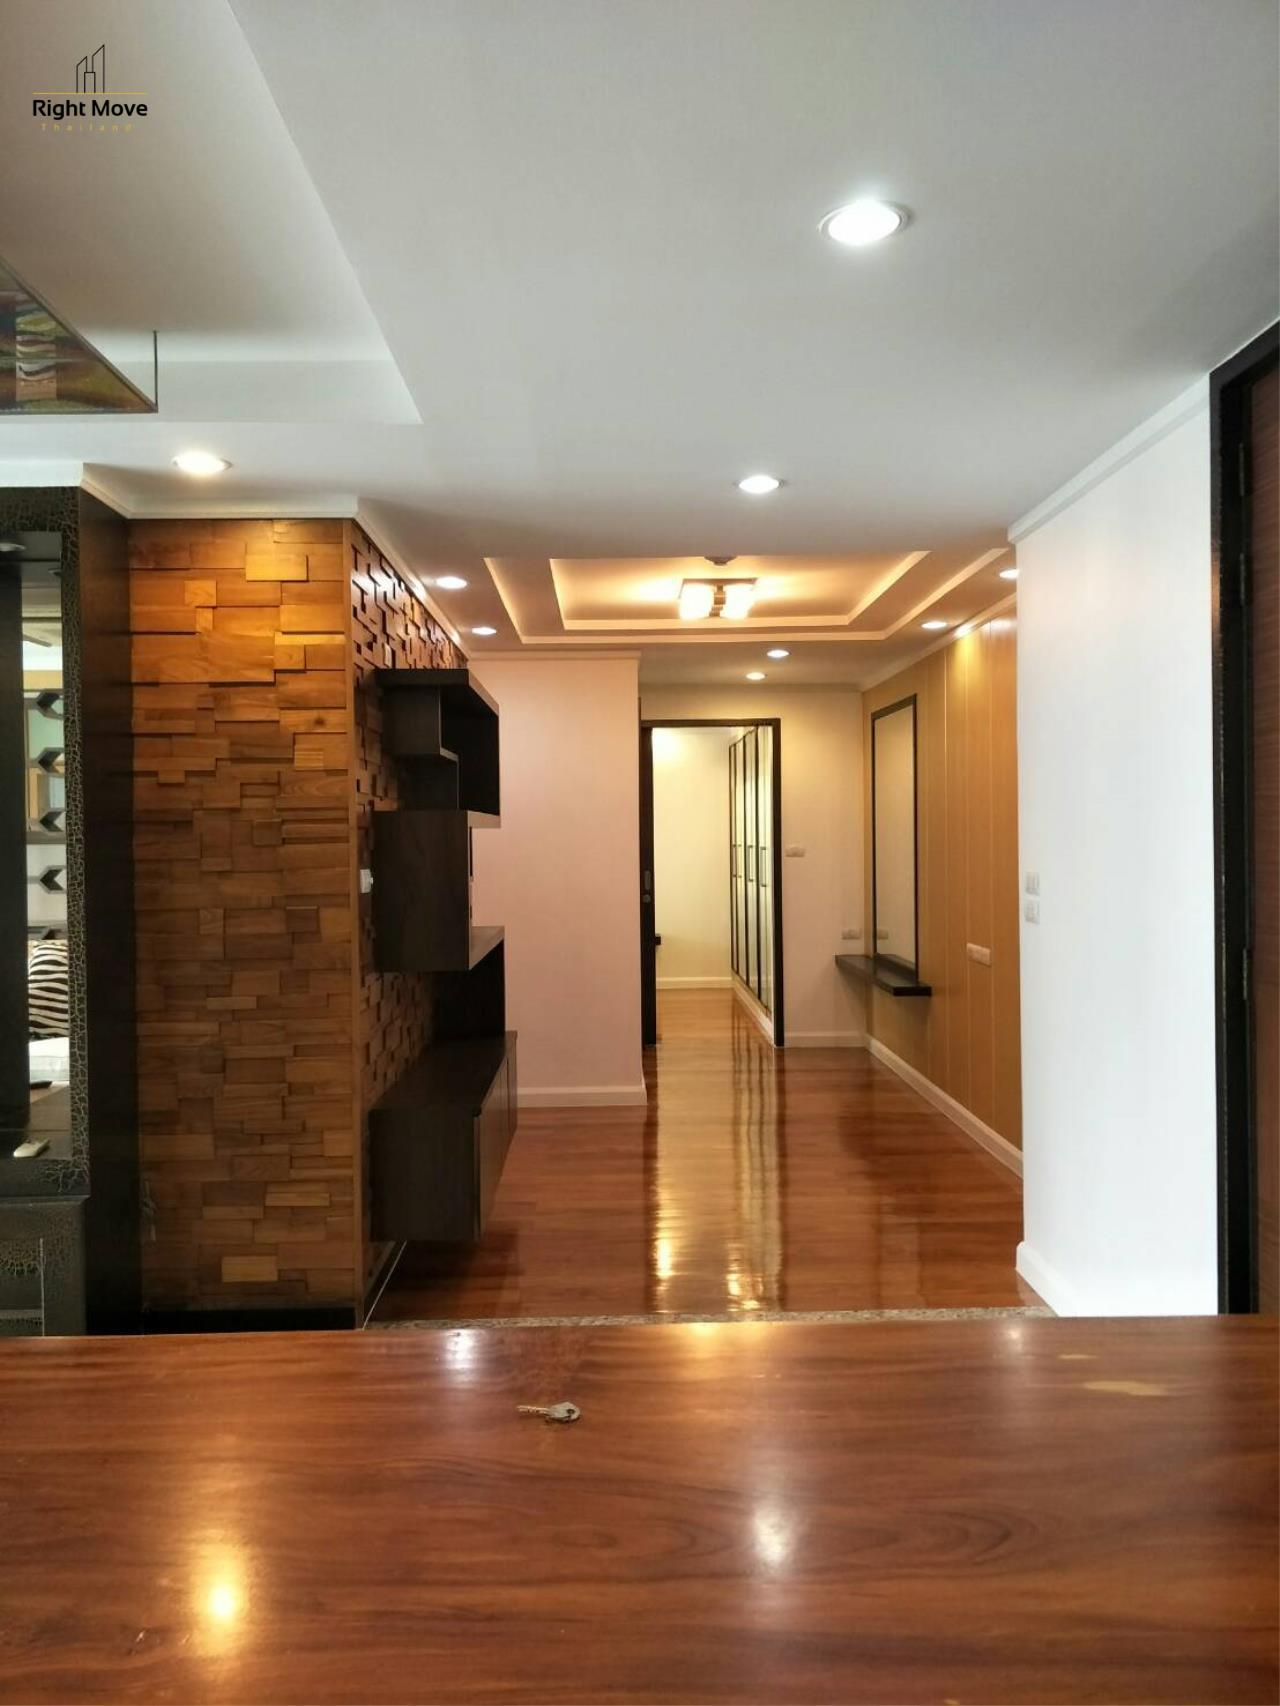 Right Move Thailand Agency's CS2431 Avenue 61 For Sale 14,300,000 THB 2 Bedrooms 102 Sqm 6